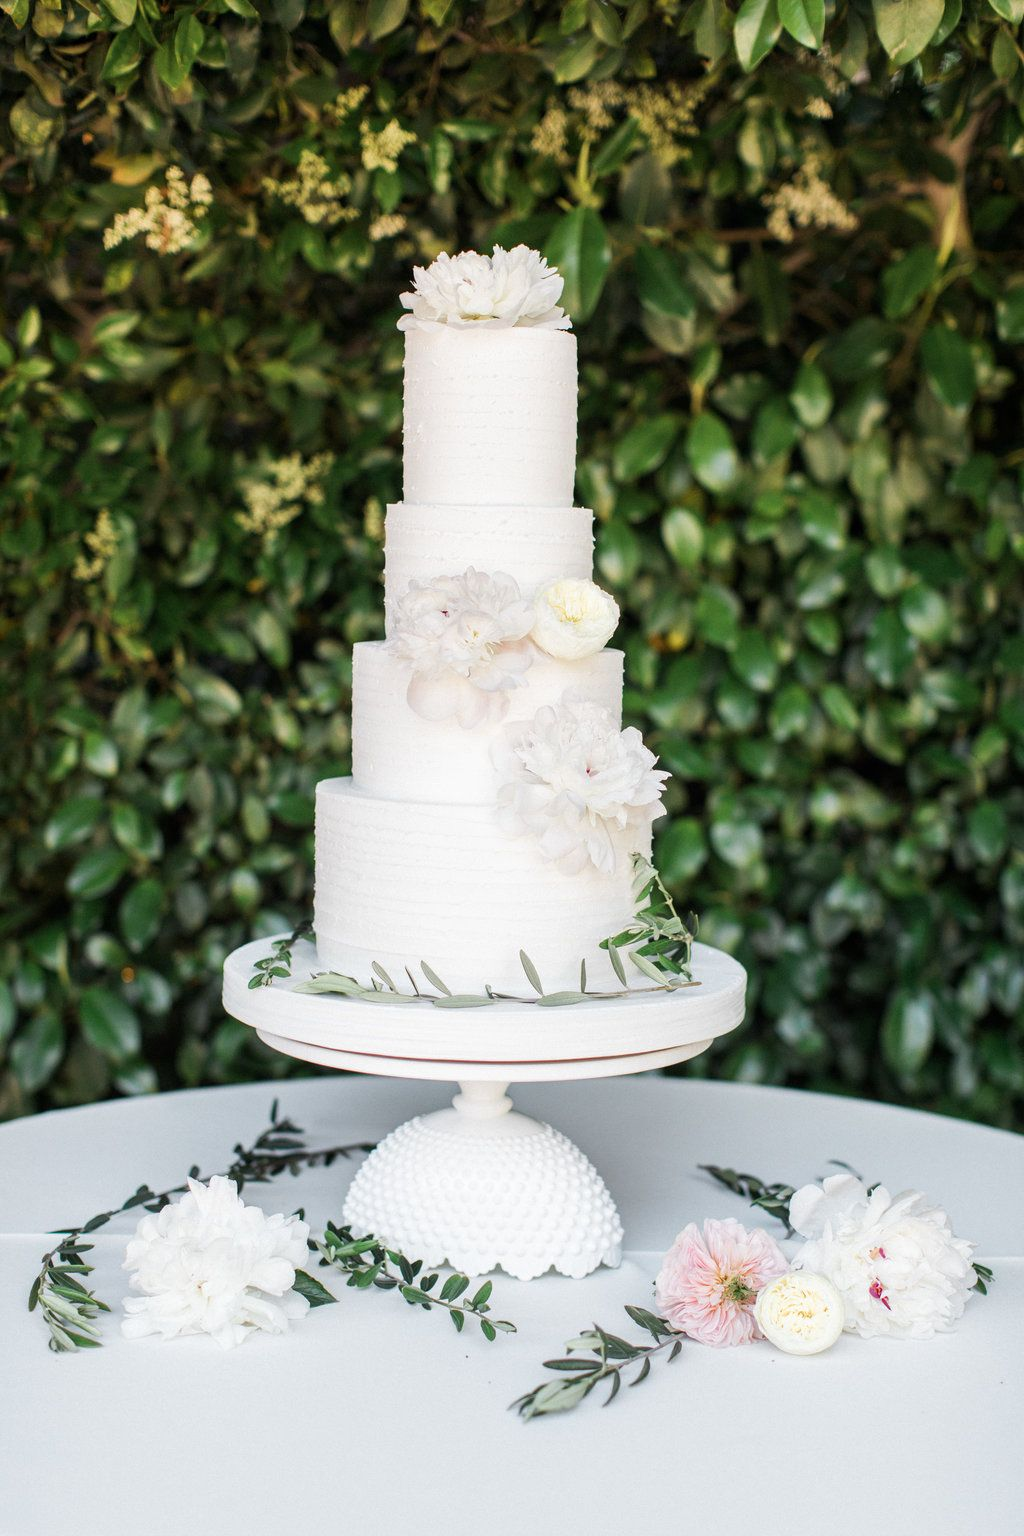 Kendallandluisuweddingatedengardens wedding cakes